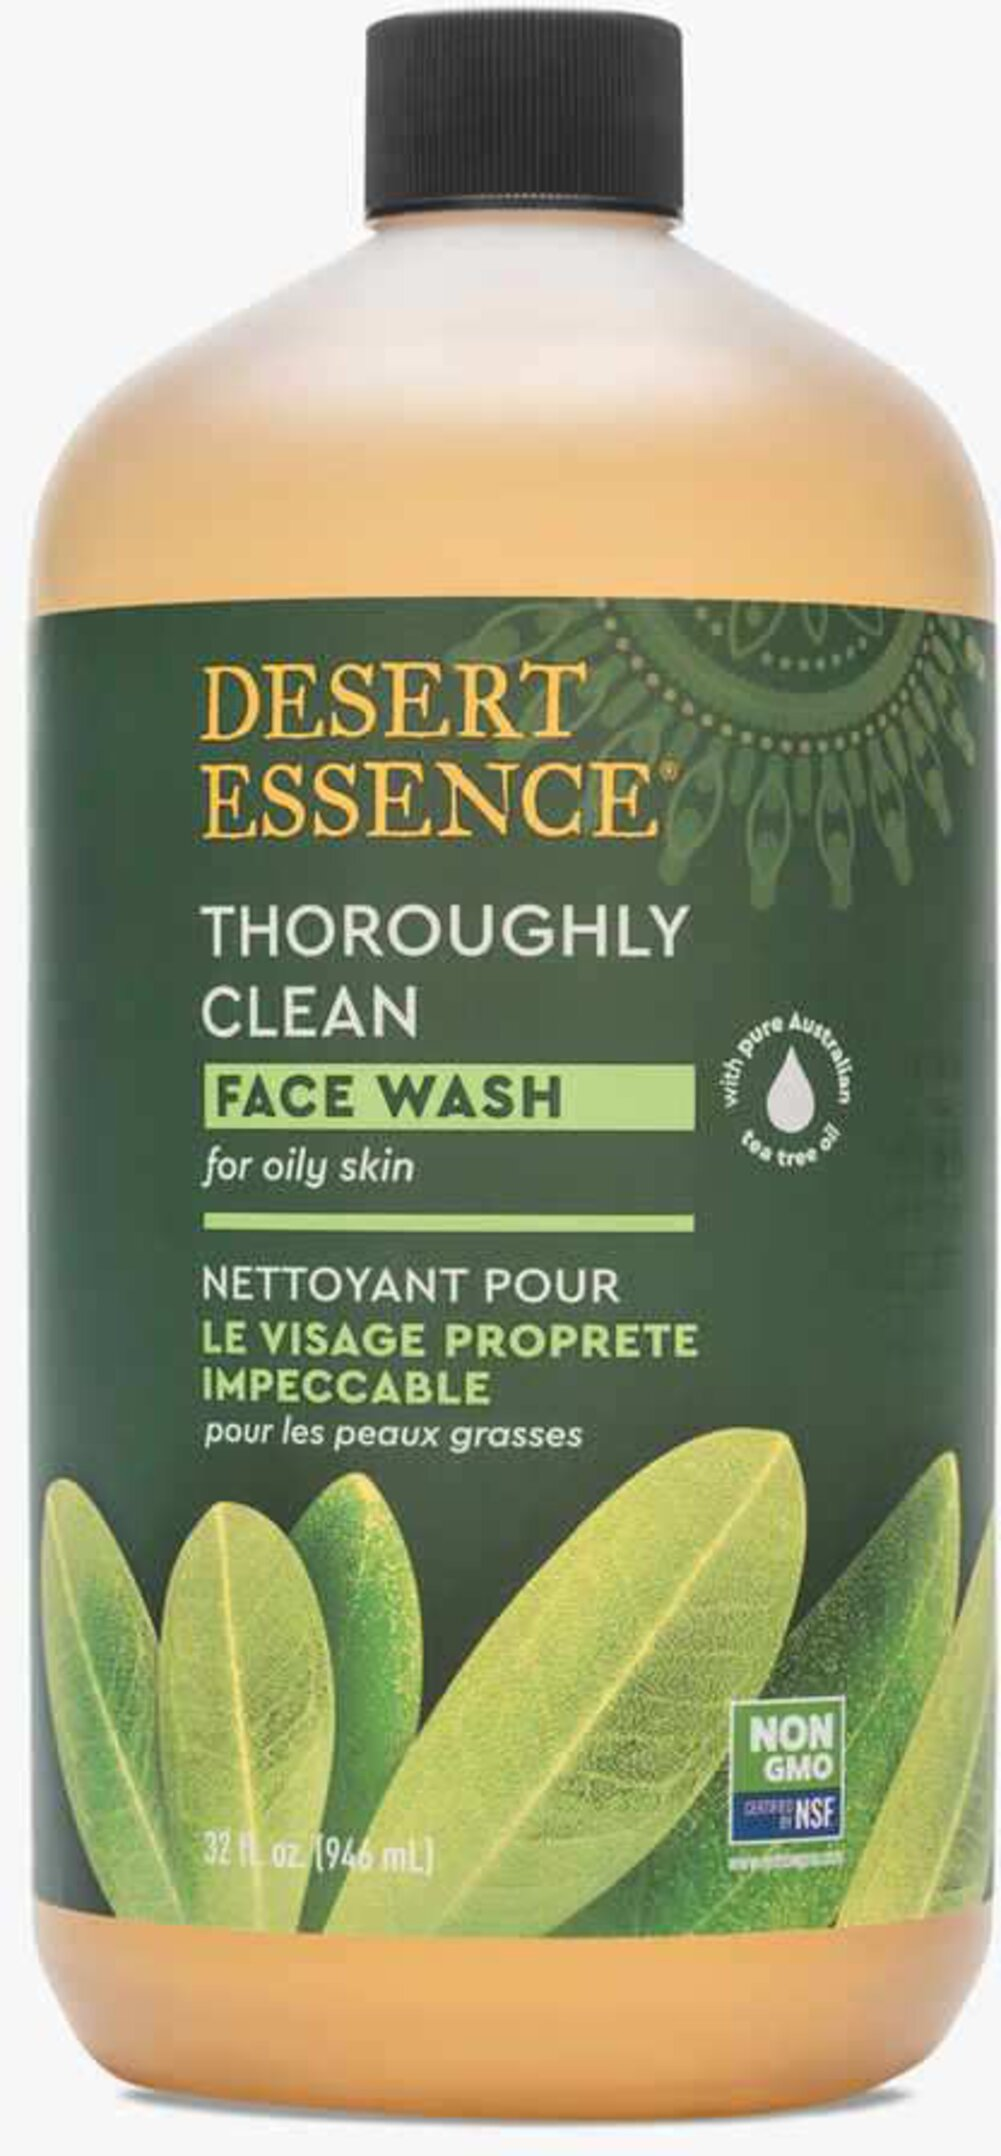 Tea Tree Oil Thoroughly Clean Face Wash for Oily/Combination Skin <p><strong>From the Manufacturer's Label: </strong></p><p>Desert Essence Thoroughly Clean Face Wash is a gentle cleansing solution that leaves your skin feeling clean and silky.  This unique face wash contains natural Organic Tea Tree Oil.  Included also are extracts of Goldenseal, Hawaiian White Ginger (Awapuhi) and the essential oil of Chamomile.  Mineral-rich Bladderwrack harvested from the sea